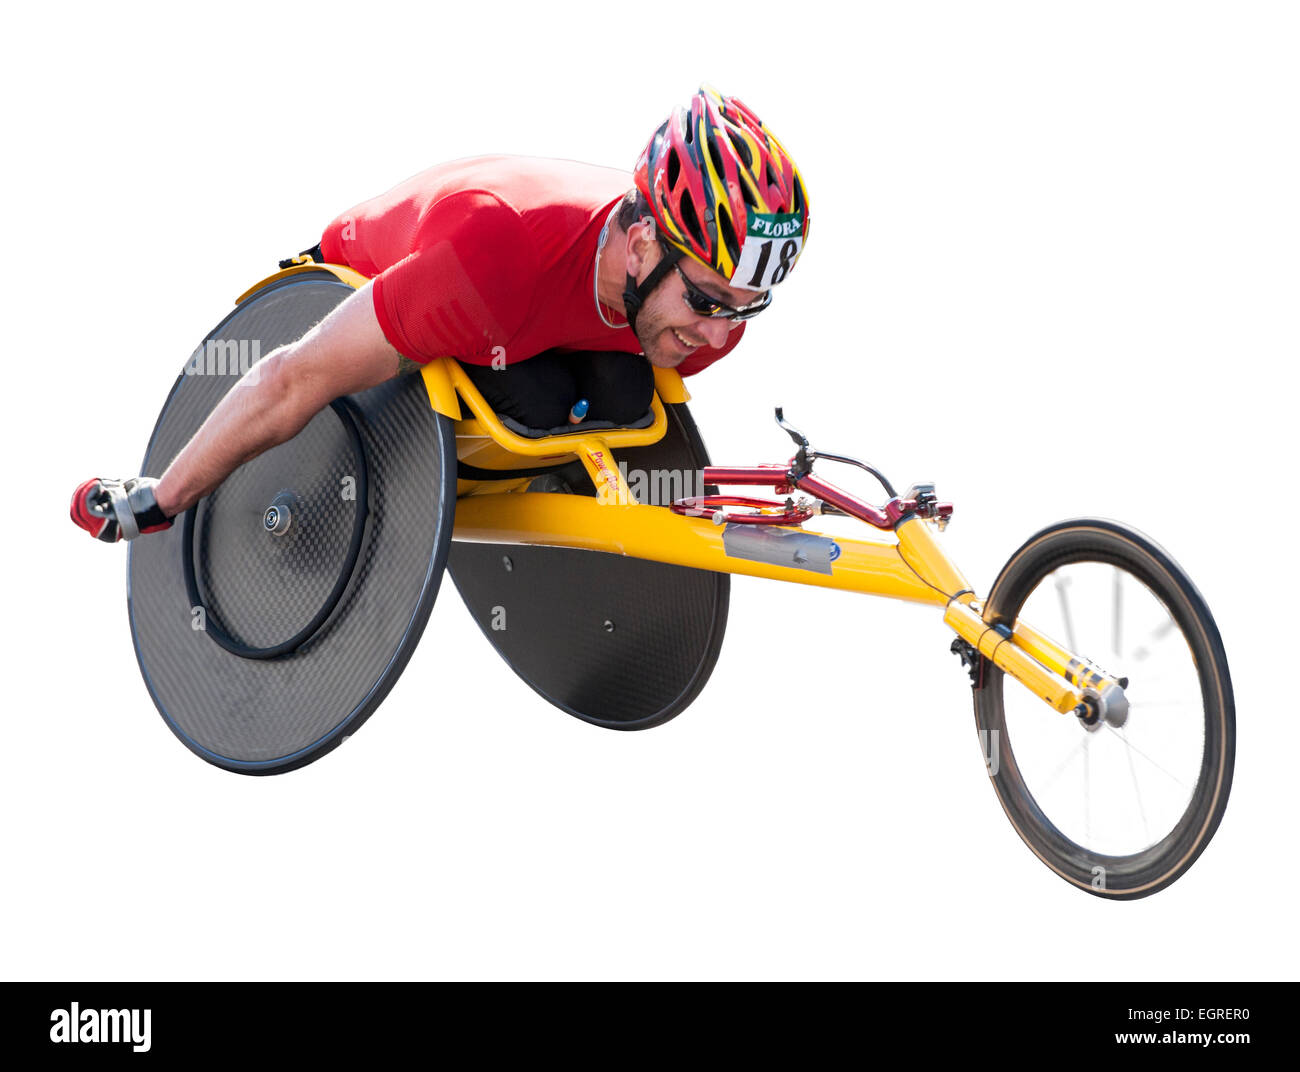 Disabled athlete taking part in the London marathon wheelchair race on a white background - Stock Image